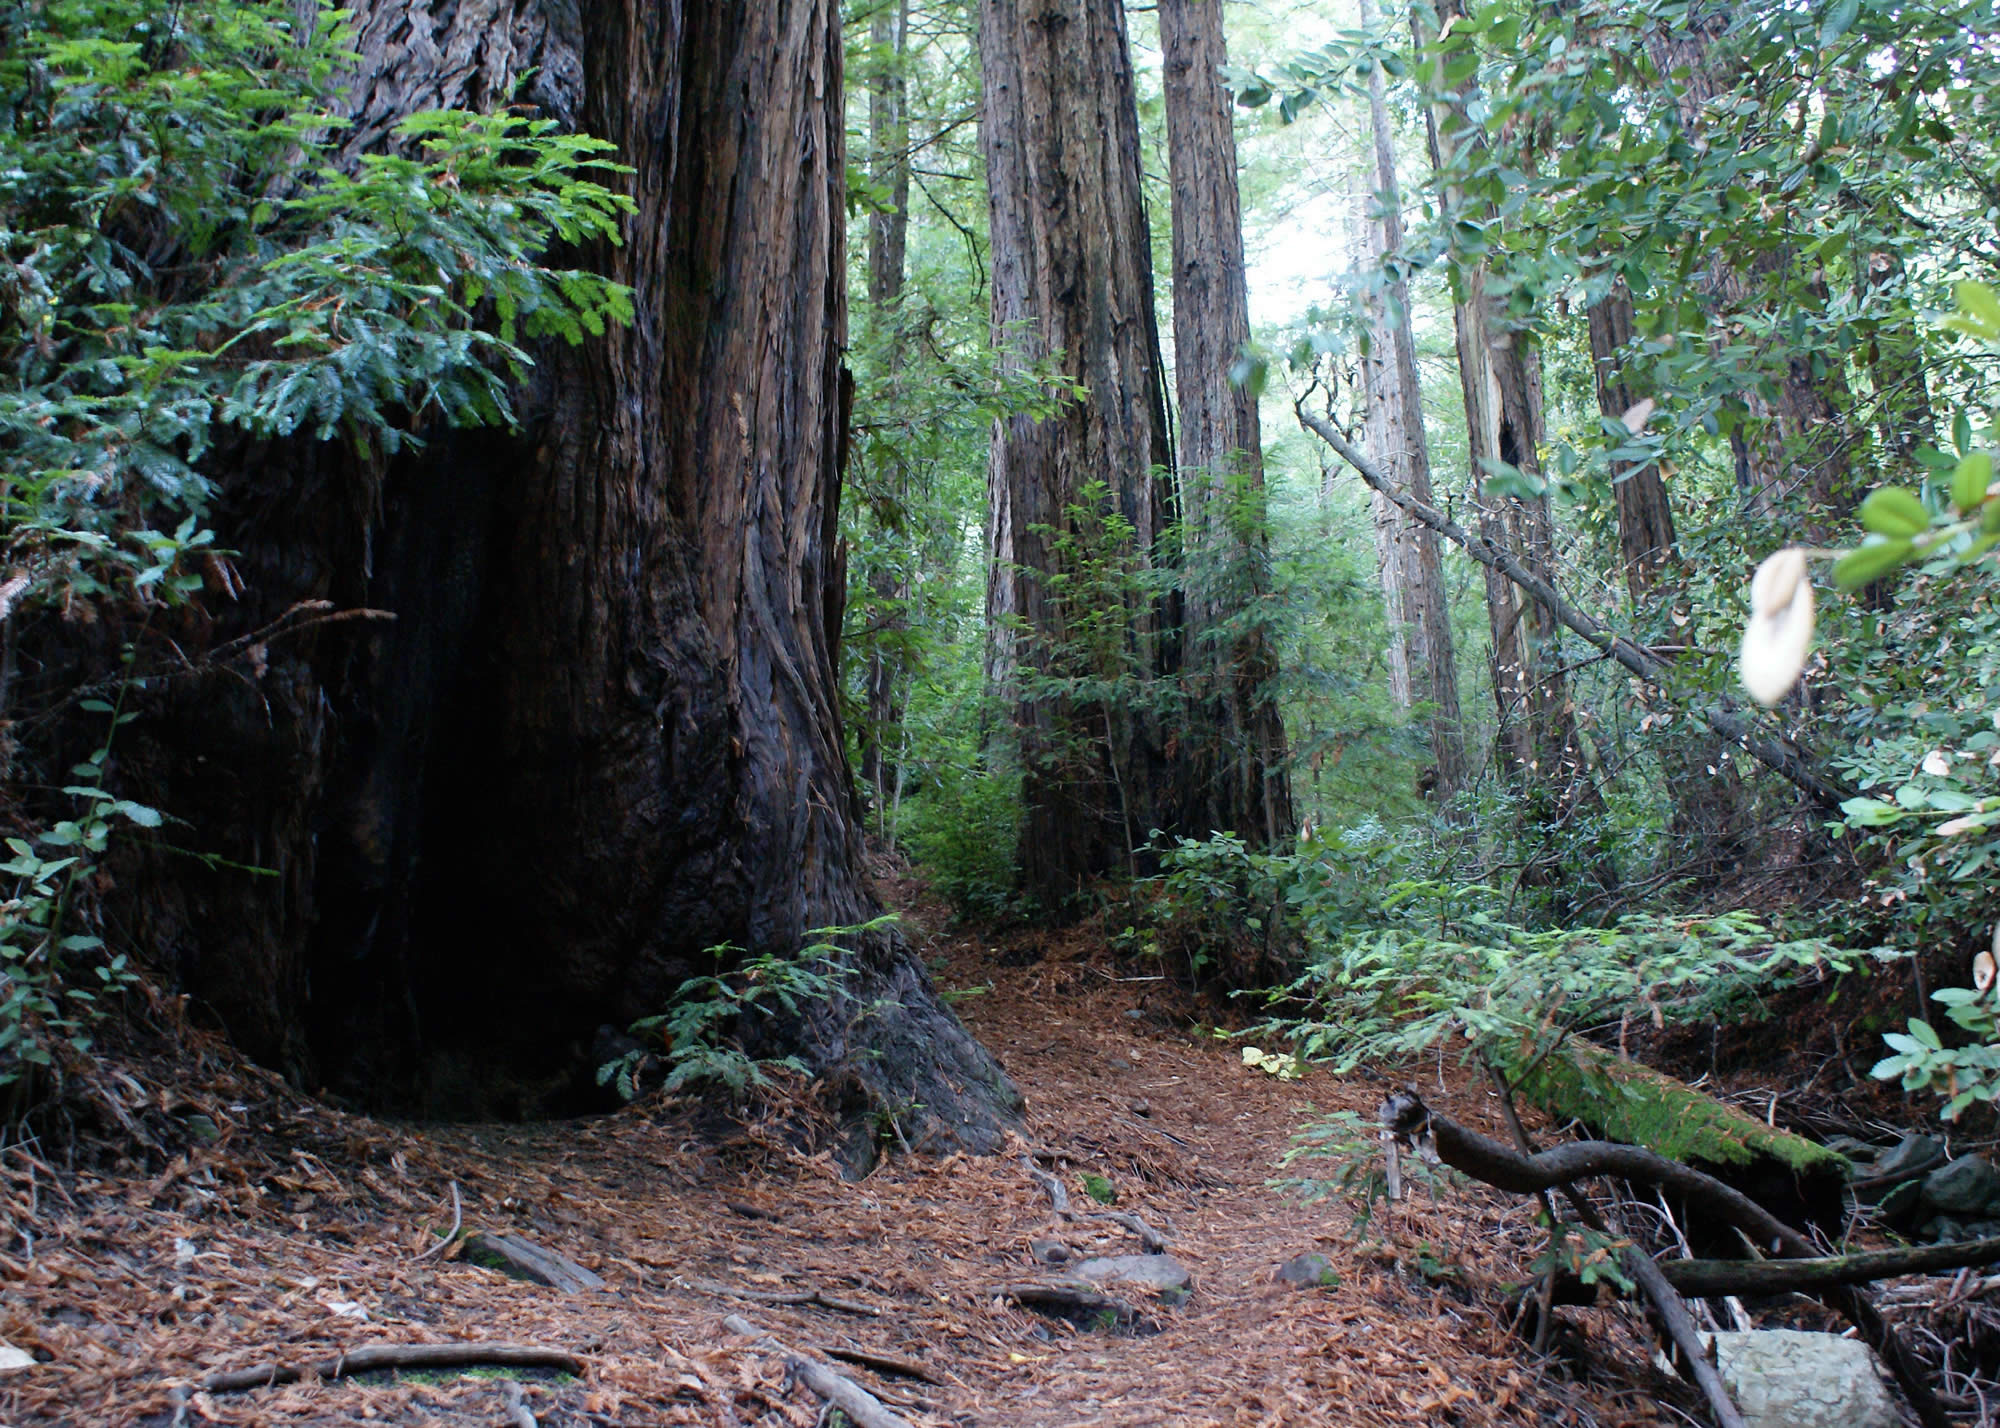 A Redwood Trail